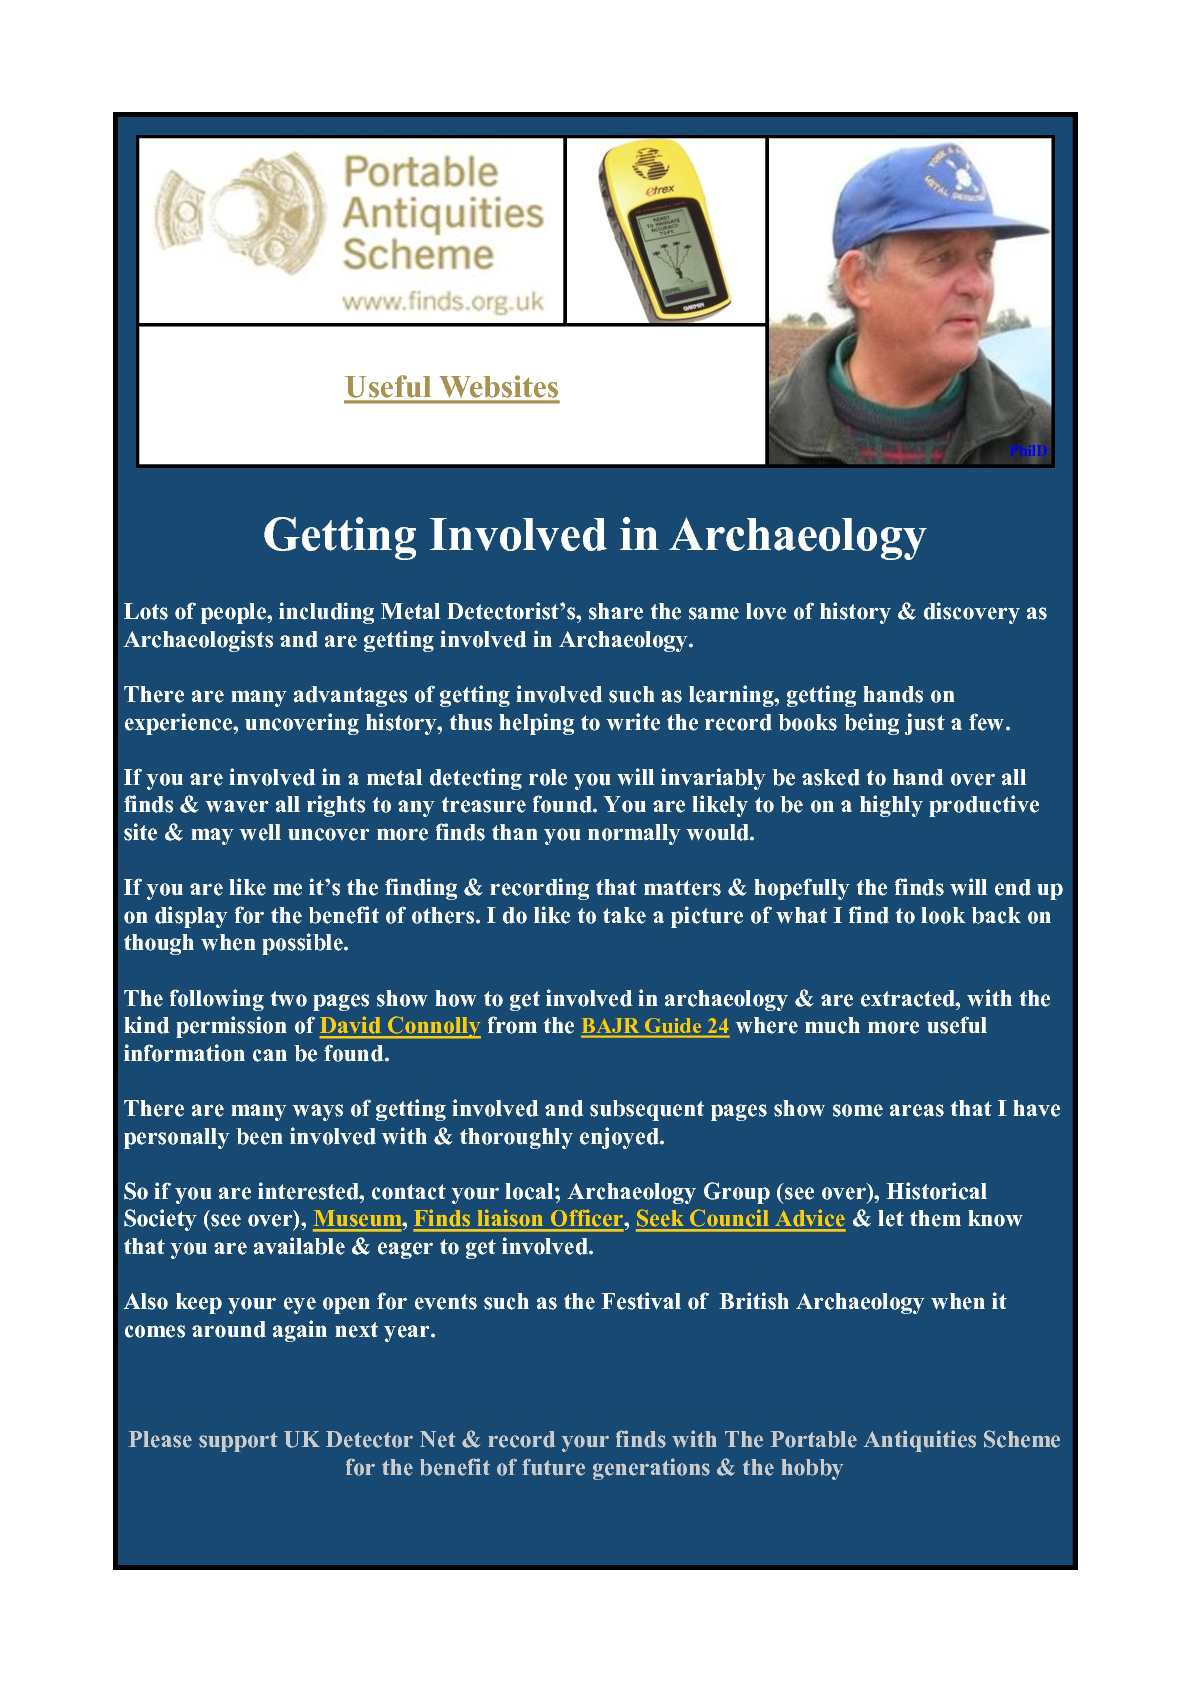 UKDN Word Issue 25 supplement - Getting involved in archaeology